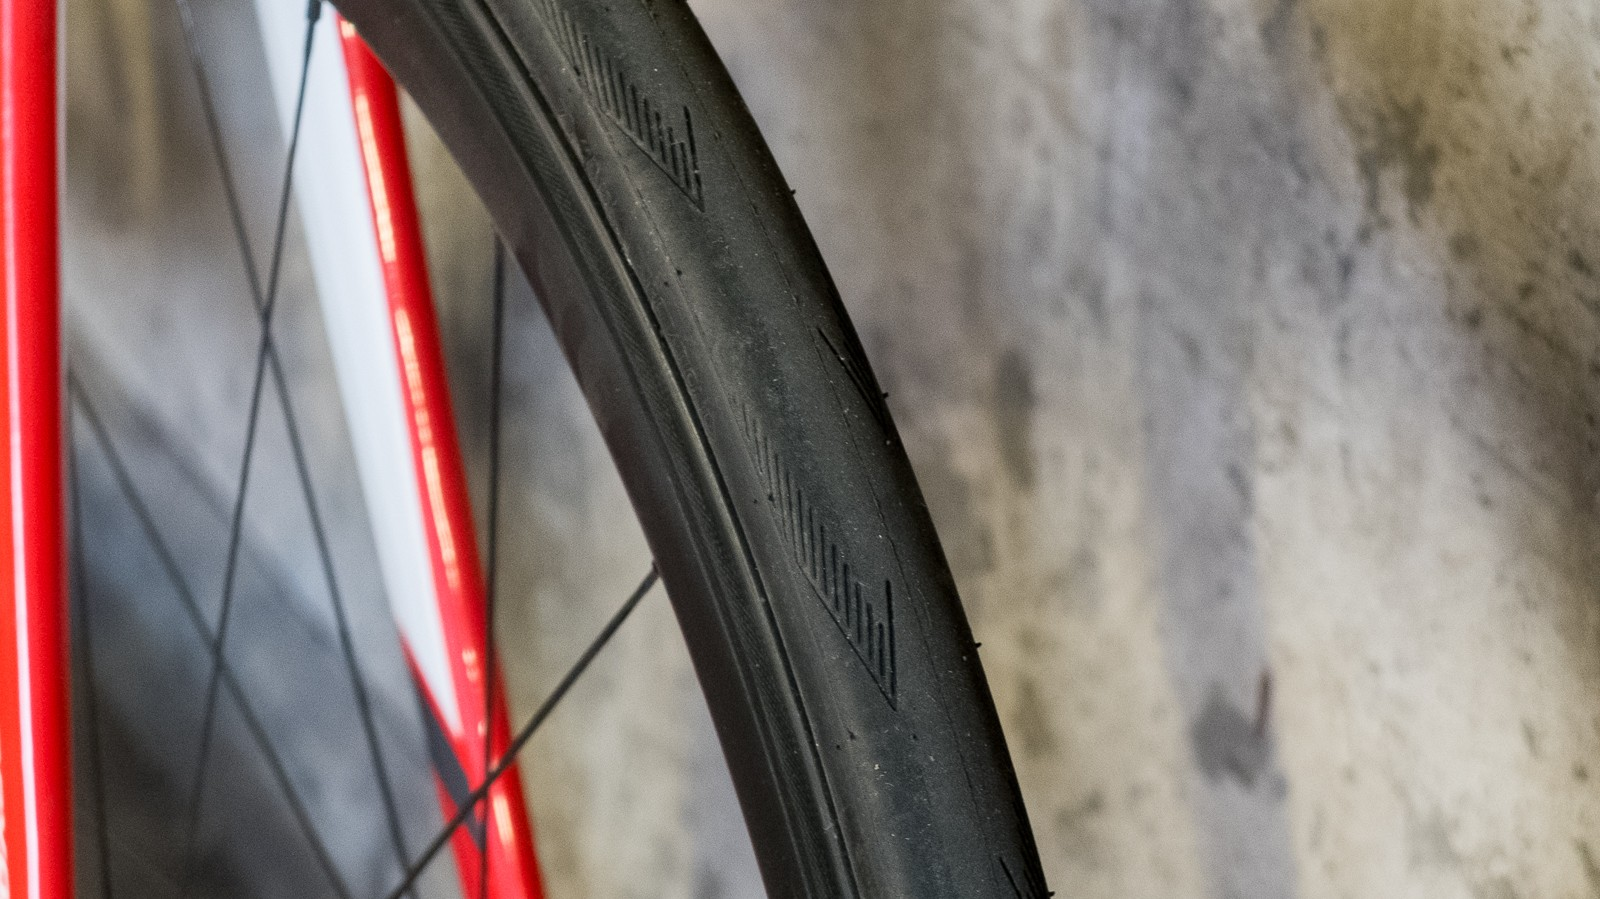 The wide rims plumped these Schwalbe Pro One tyres up well